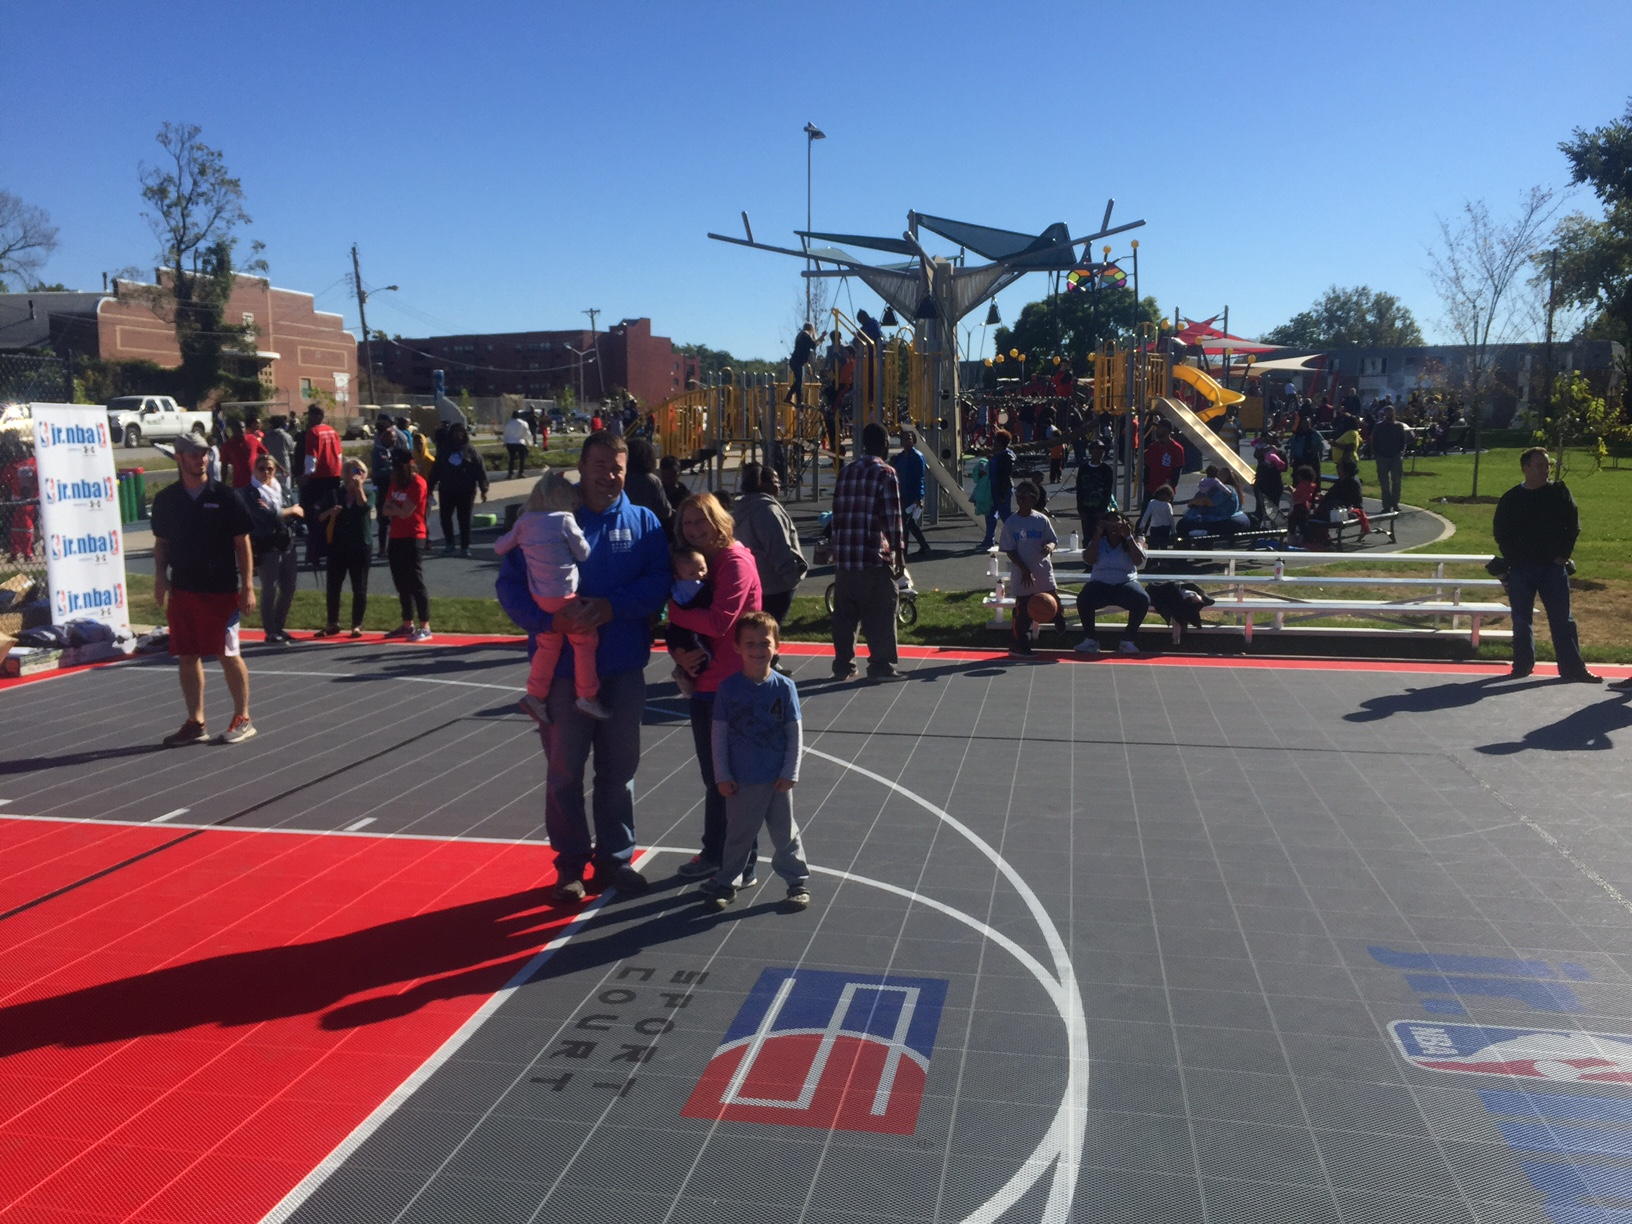 Courts 4 Communities: Sport Court, Sport Court St. Louis and NRPA Provide Wellston Community with a Safe Place to Play